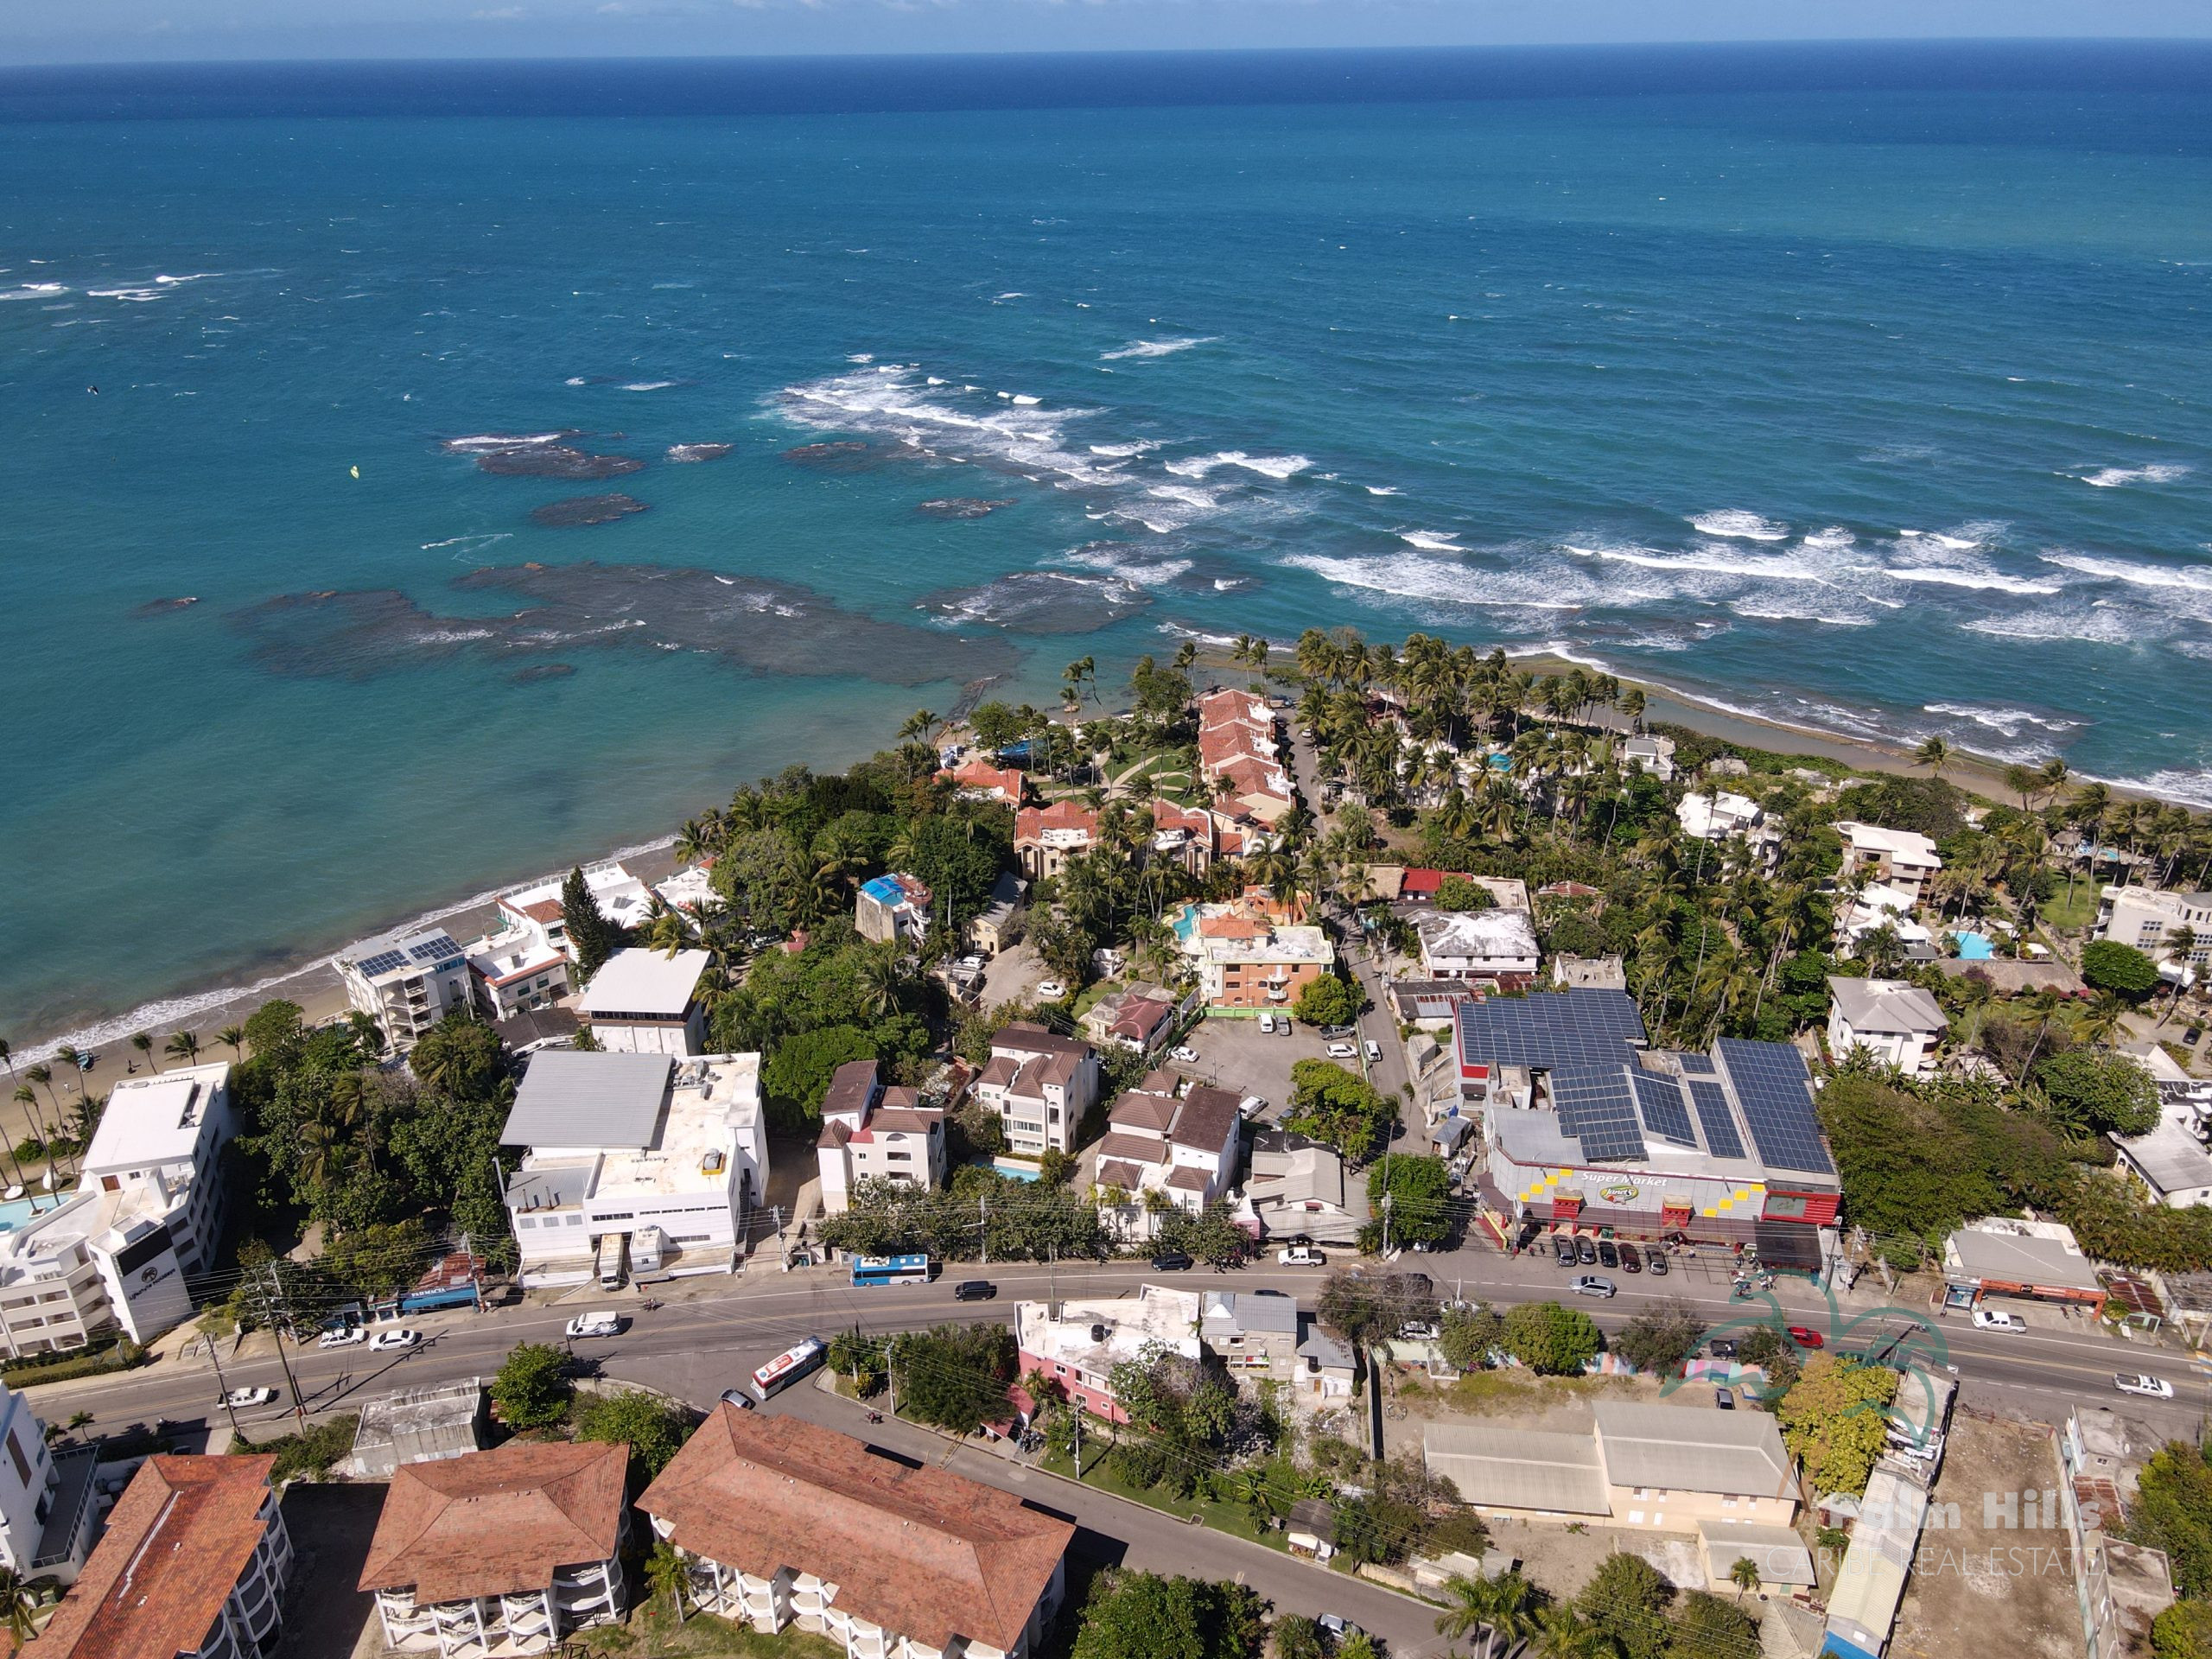 8 apartments in the center of Cabarete